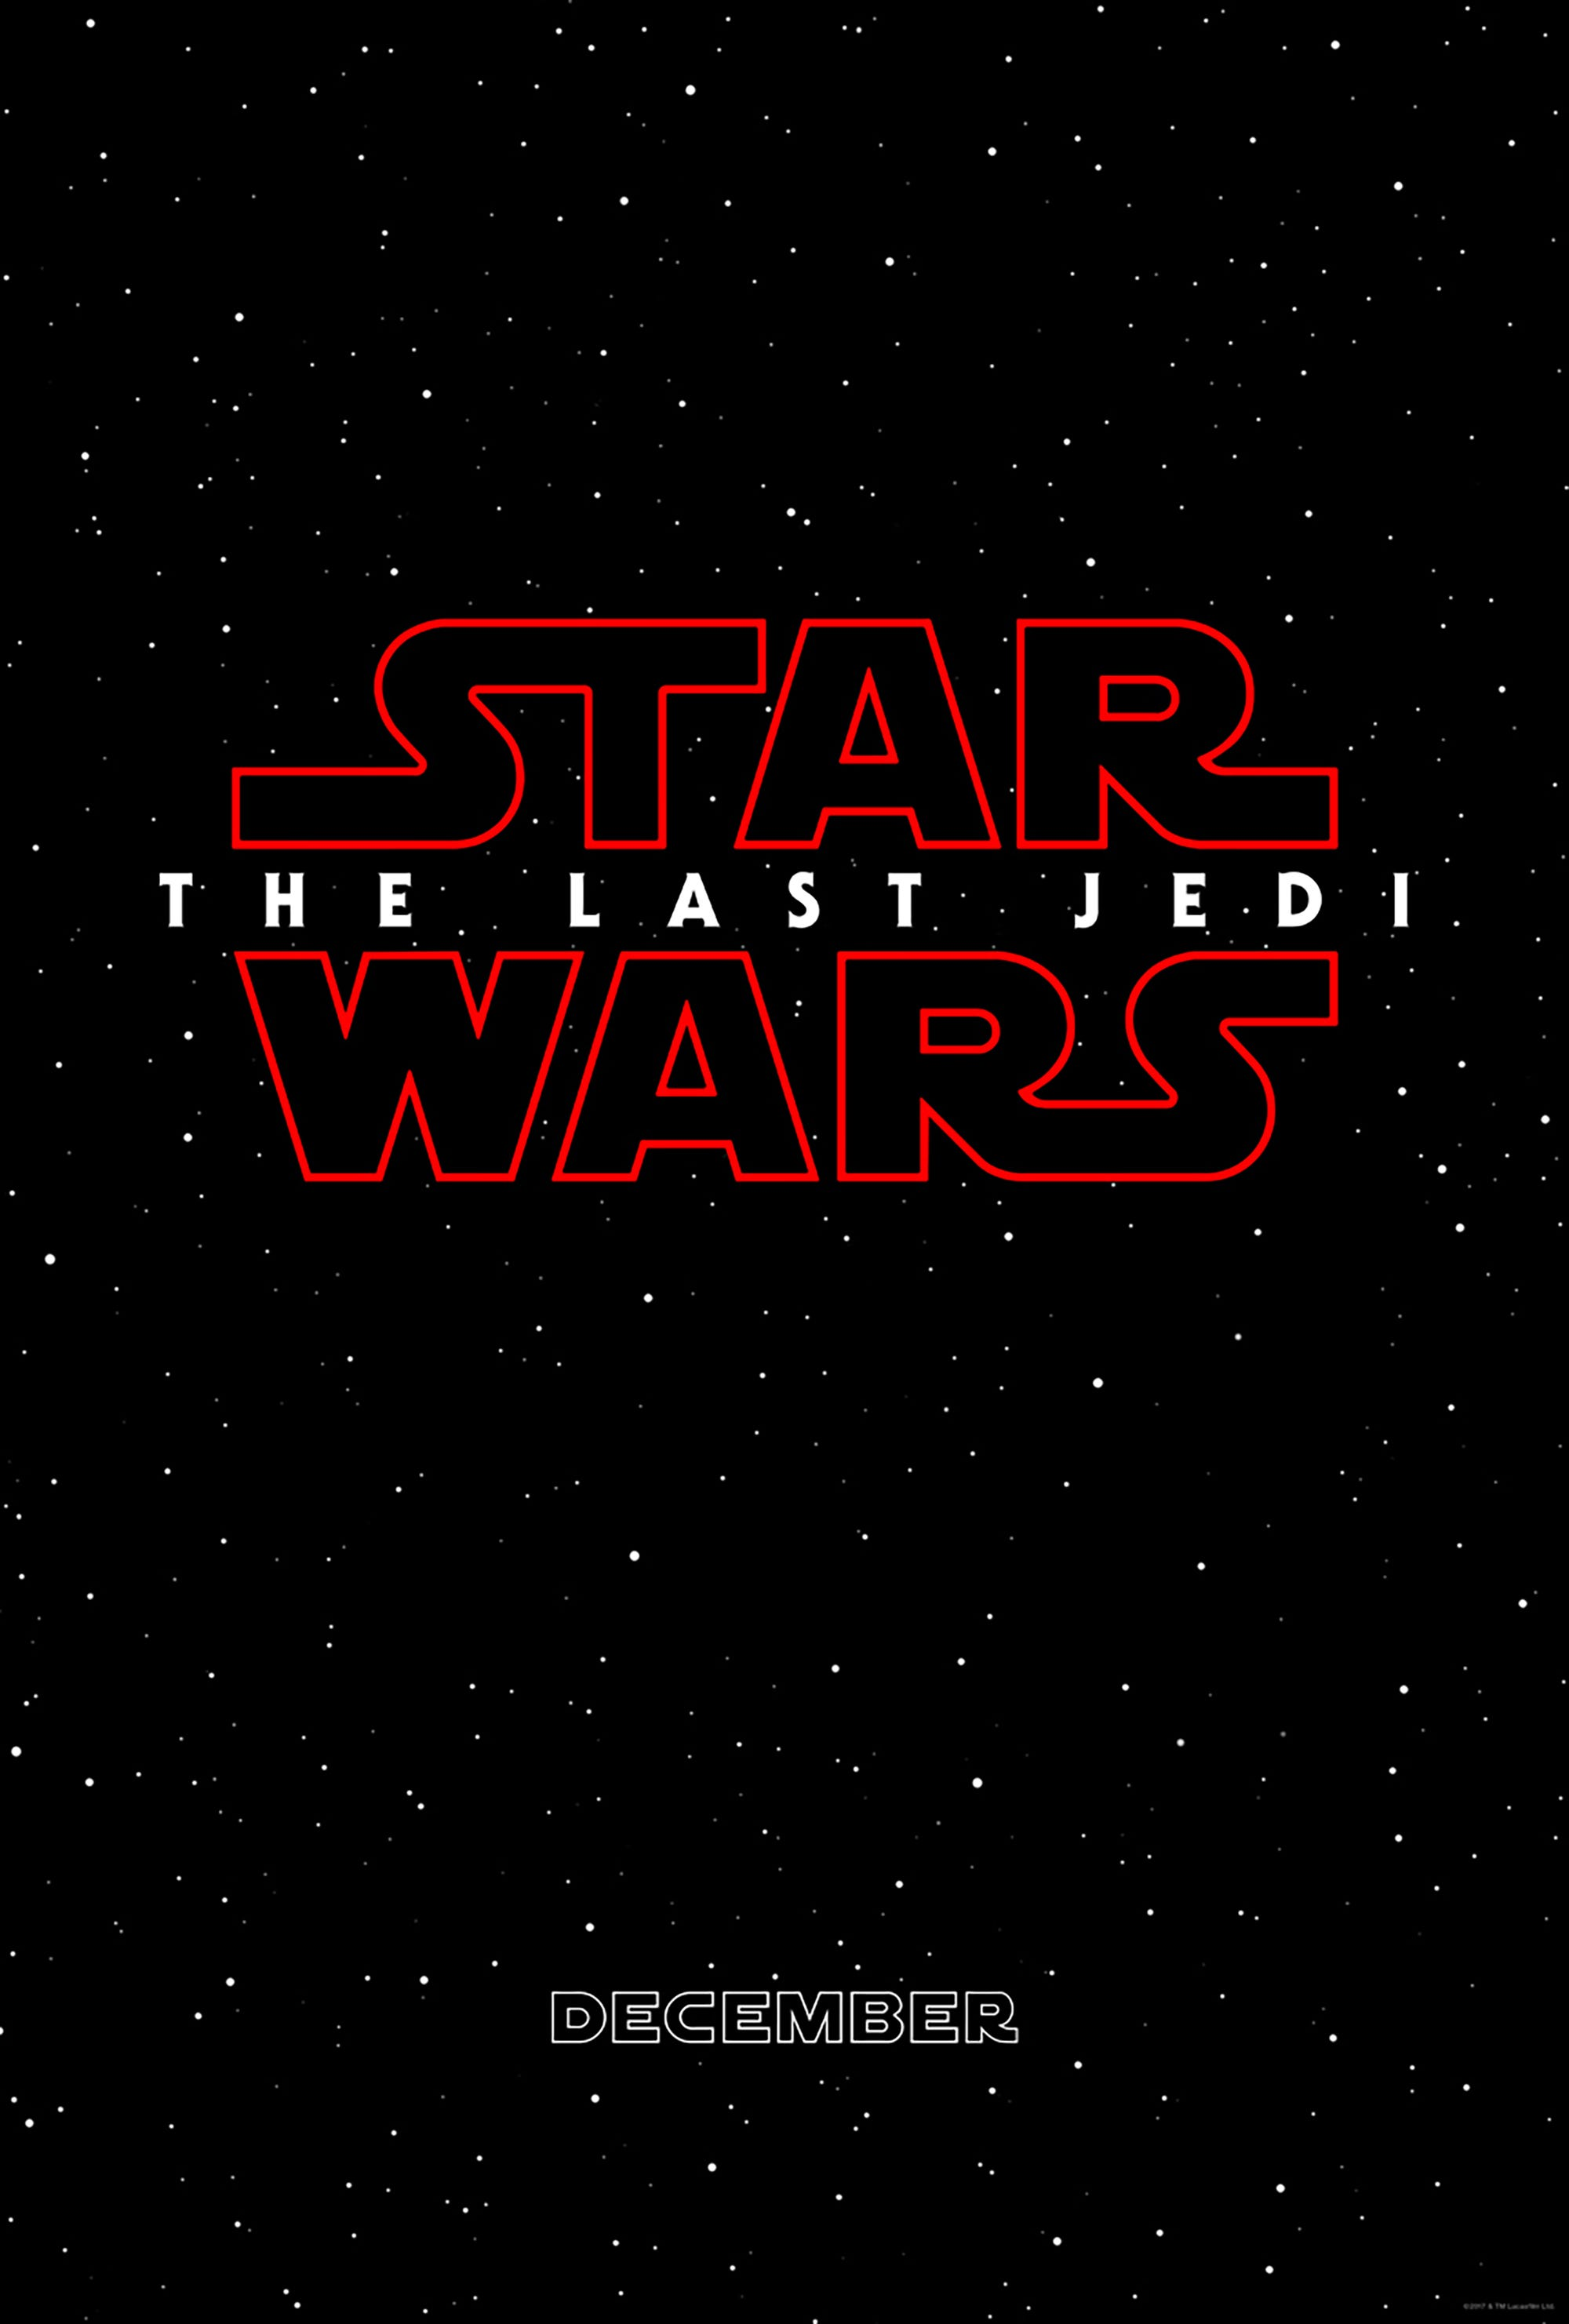 'Star Wars: Episode VIII' will be titled 'The Last Jedi'